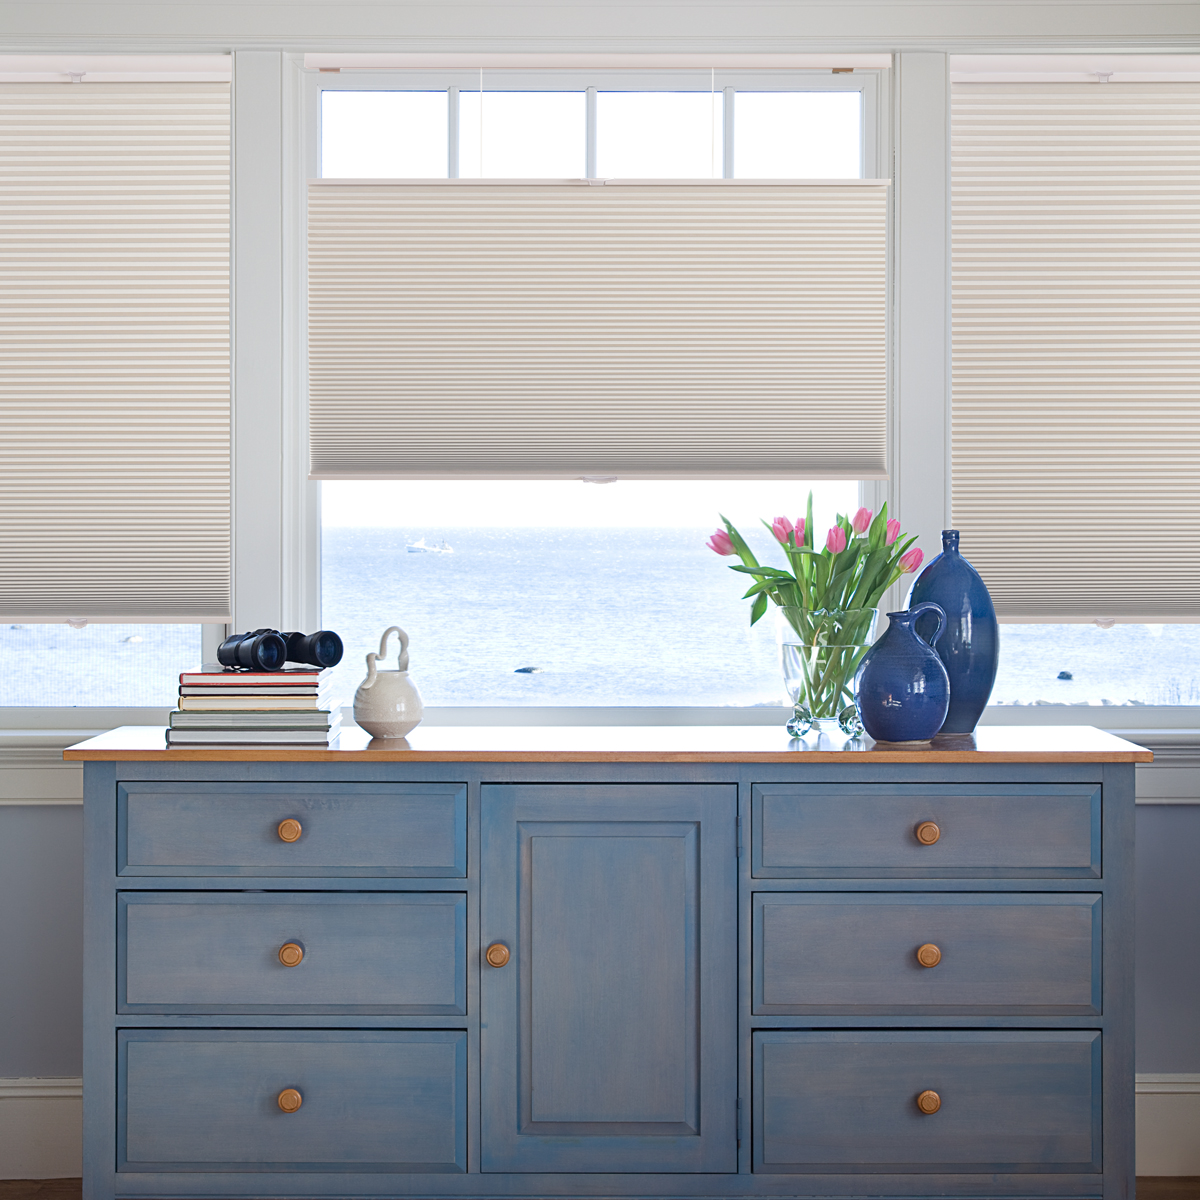 Buy Cellular Shades